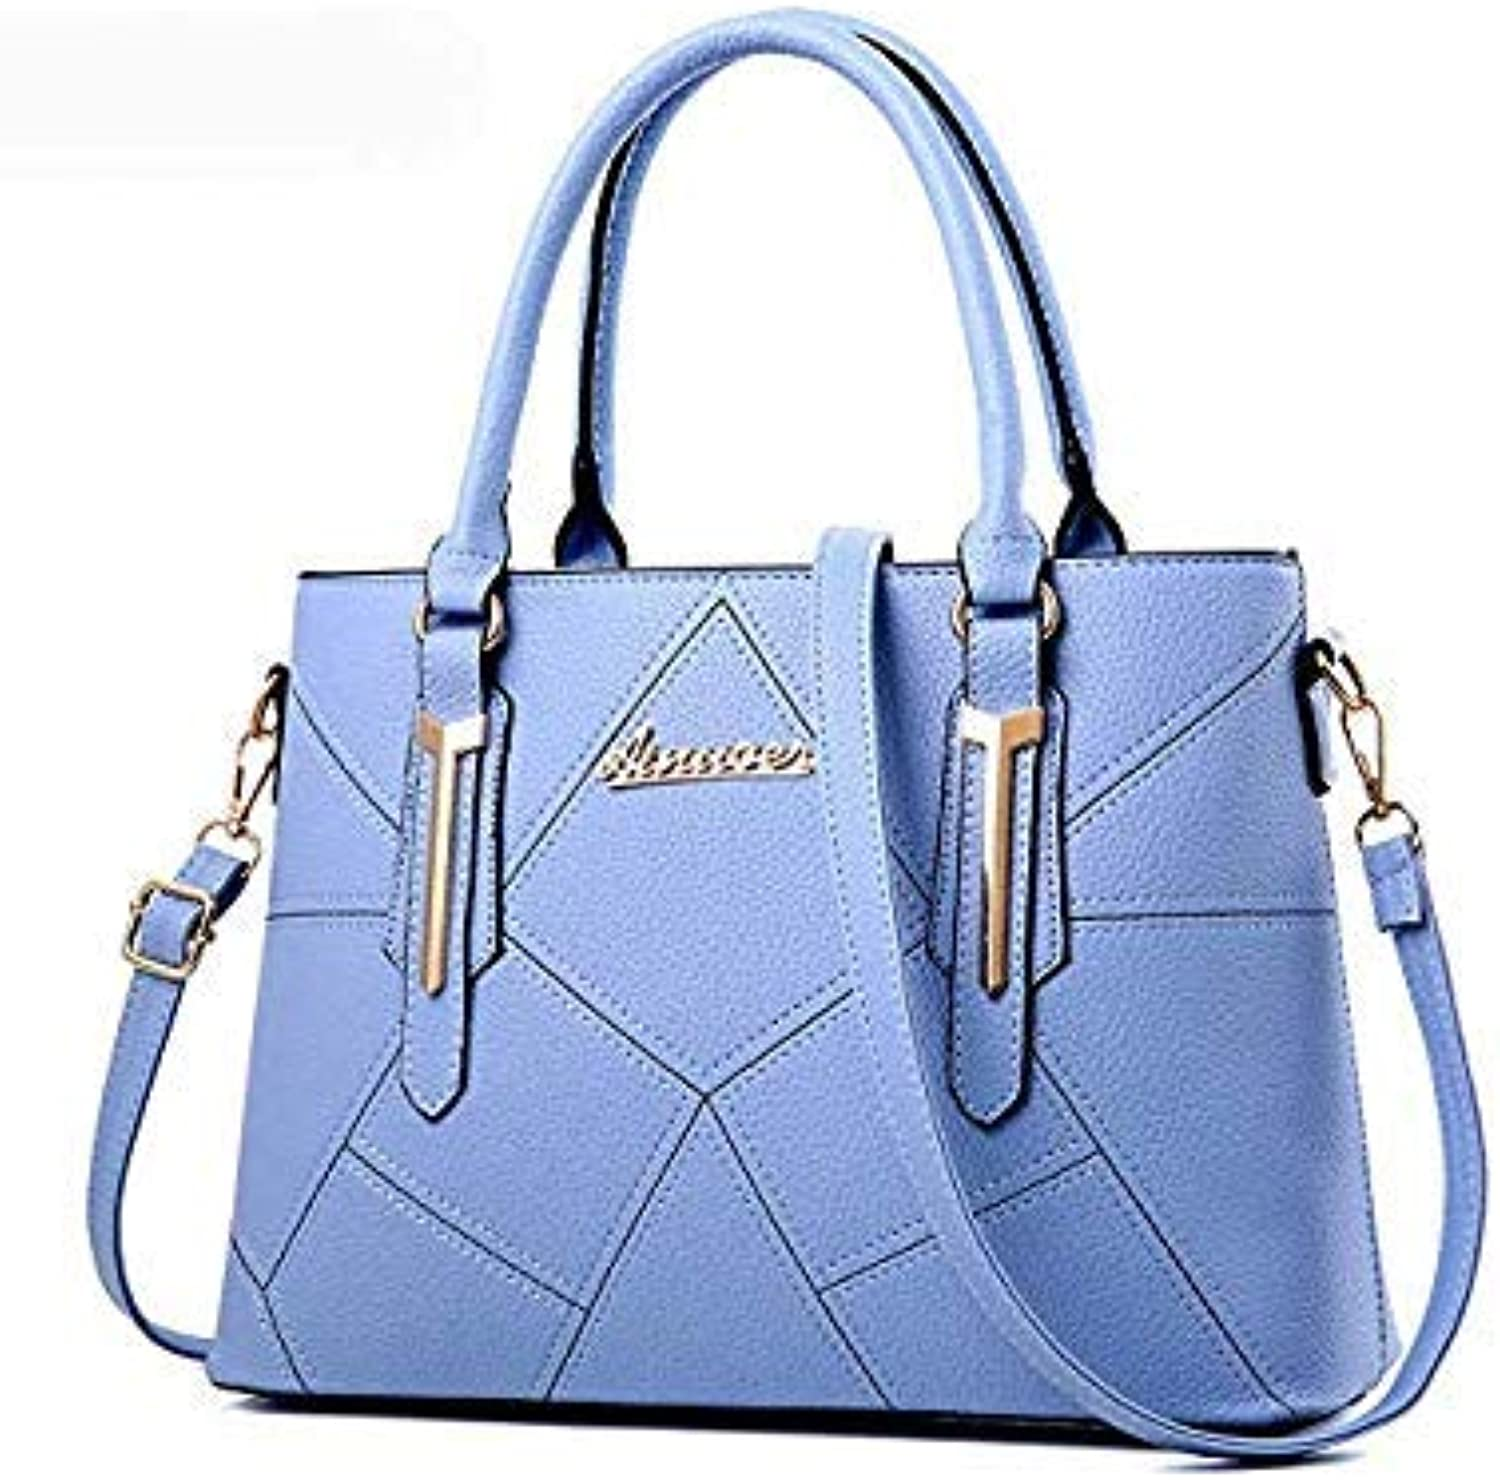 Bloomerang Ainvoev Women Handbags Pouch Fashion Ladies Totes Women Shoulder Messenger Bags Big Capacity Bolsa High Quality Mother Bag a3415 color Sky blueee Women Totes 33x13x24cm